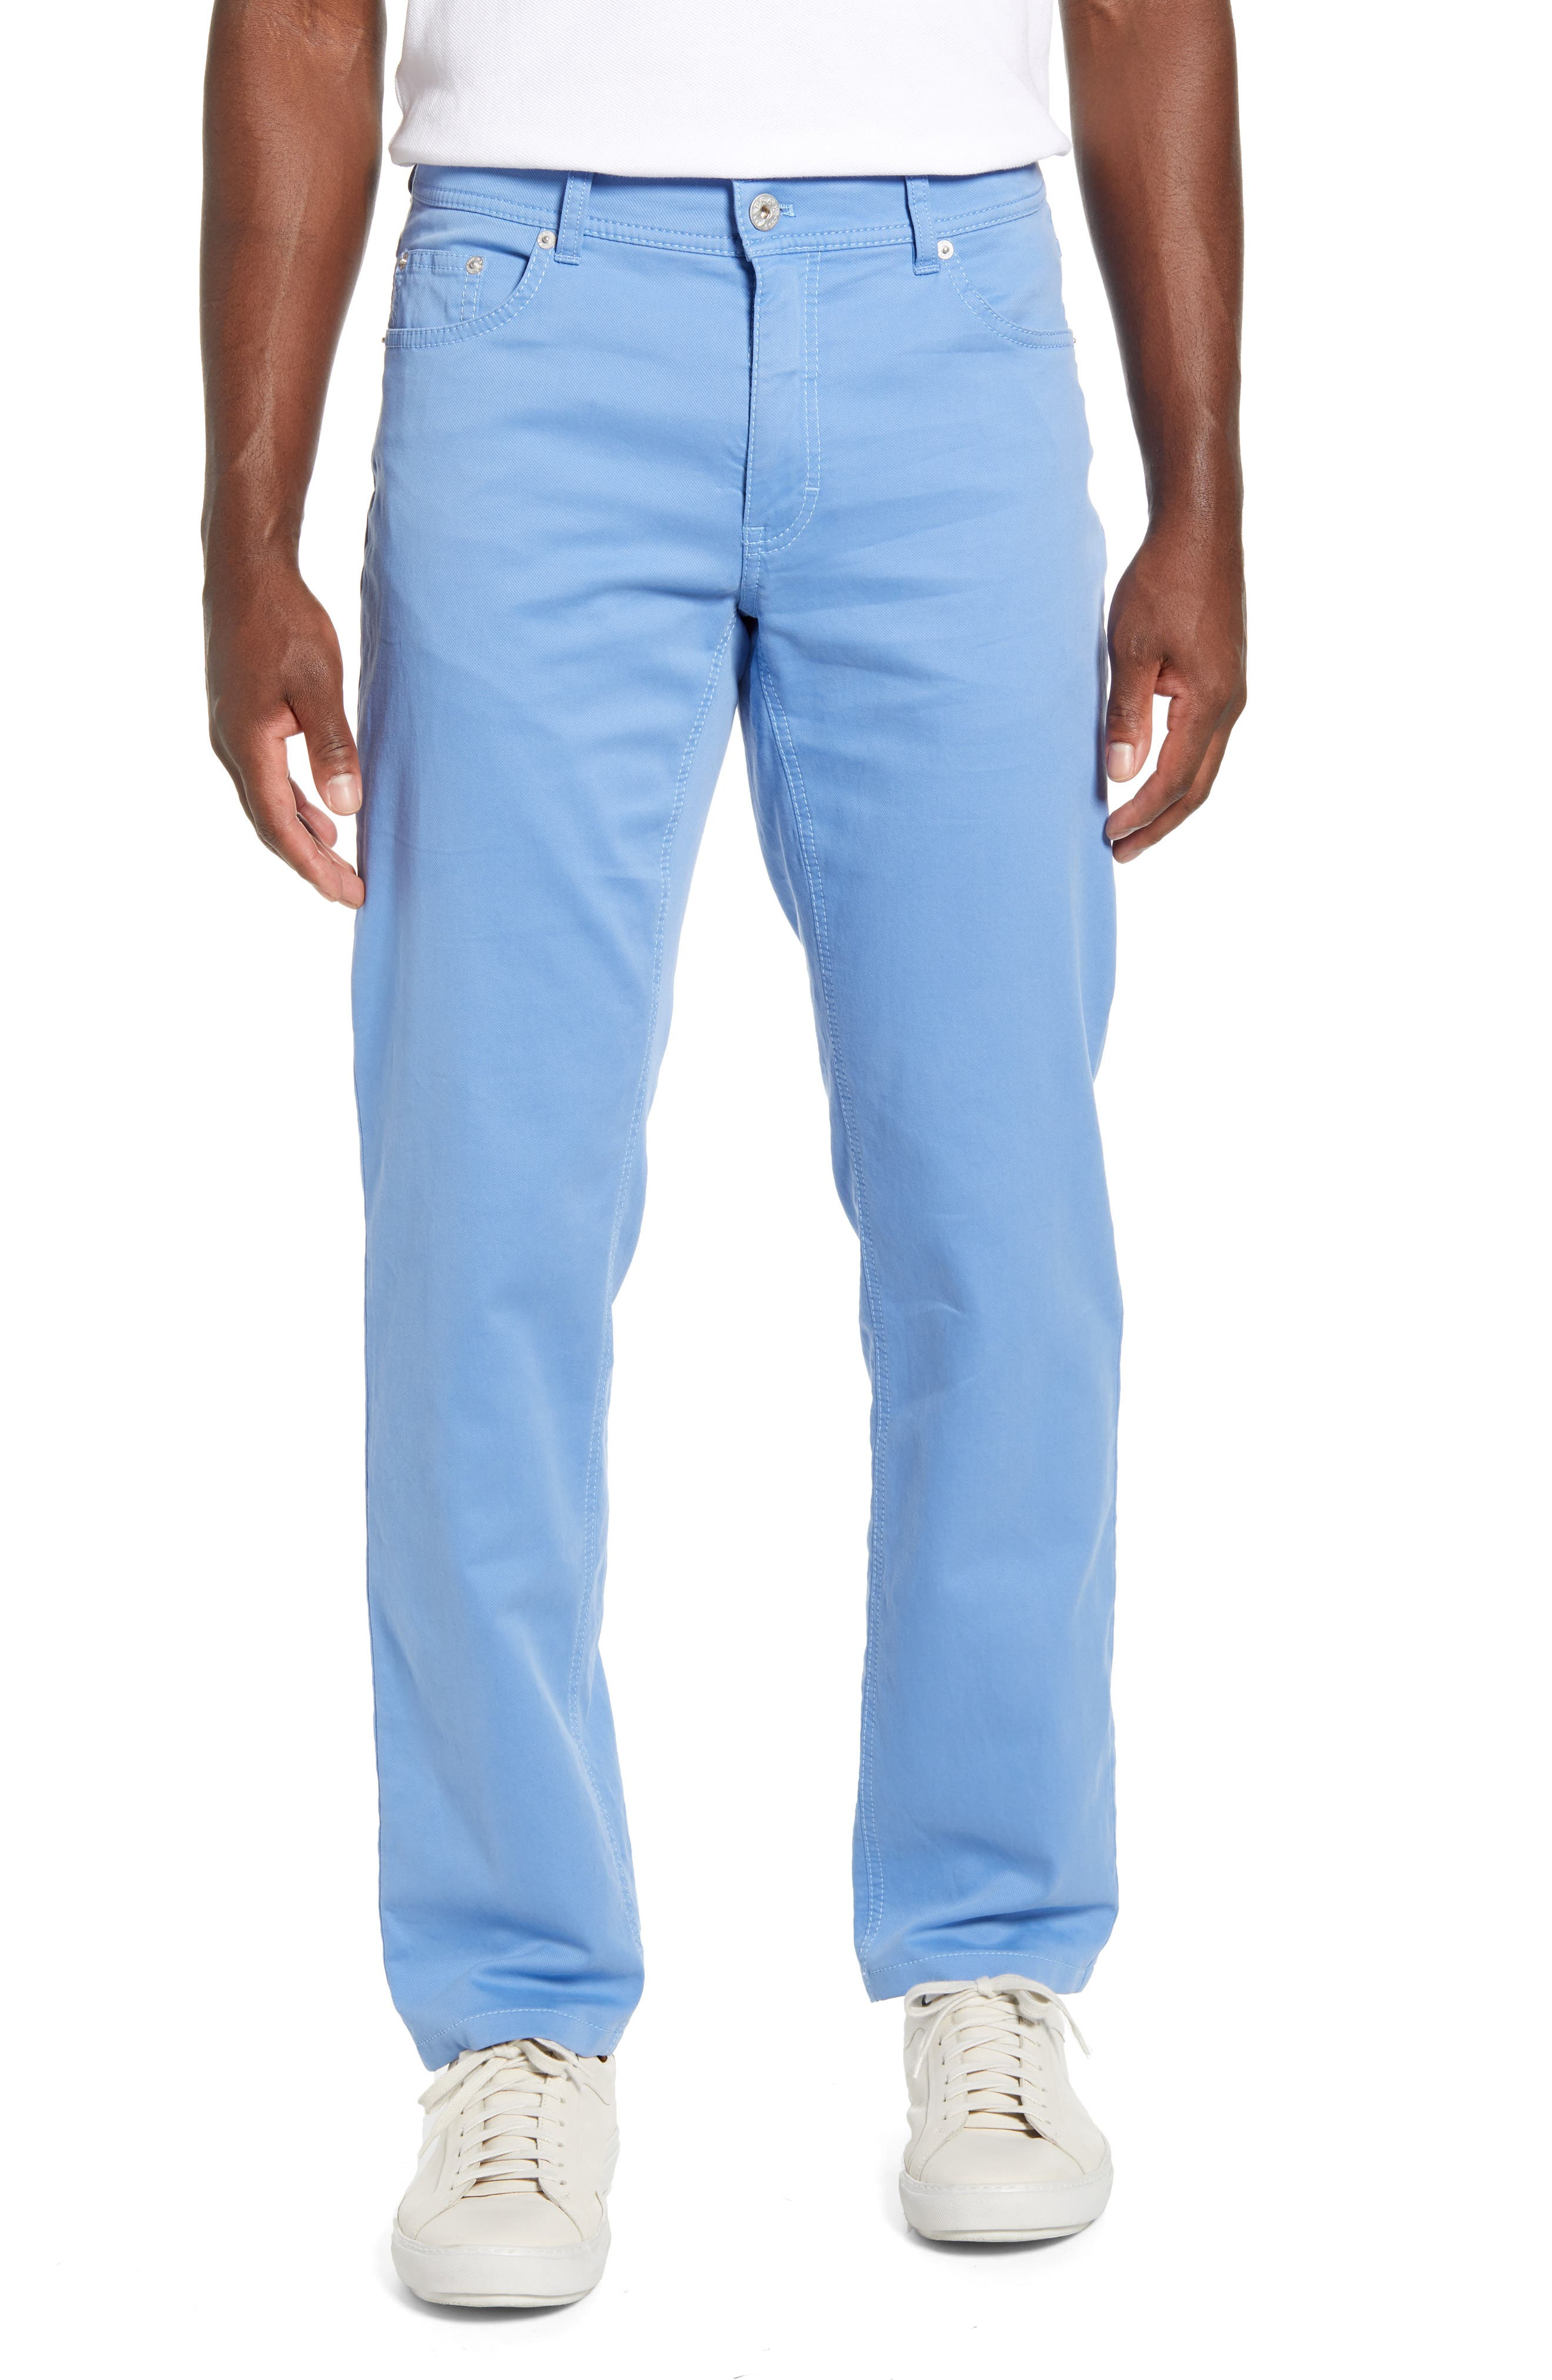 Soft coloring furthers the versatile appeal of five-pocket pants made from a two-tone stretch weave with a straight-leg profile. Style Name: Brax Cooper Fancy Hurricane Regular Fit Pants. Style Number: 5918991. Available in stores.